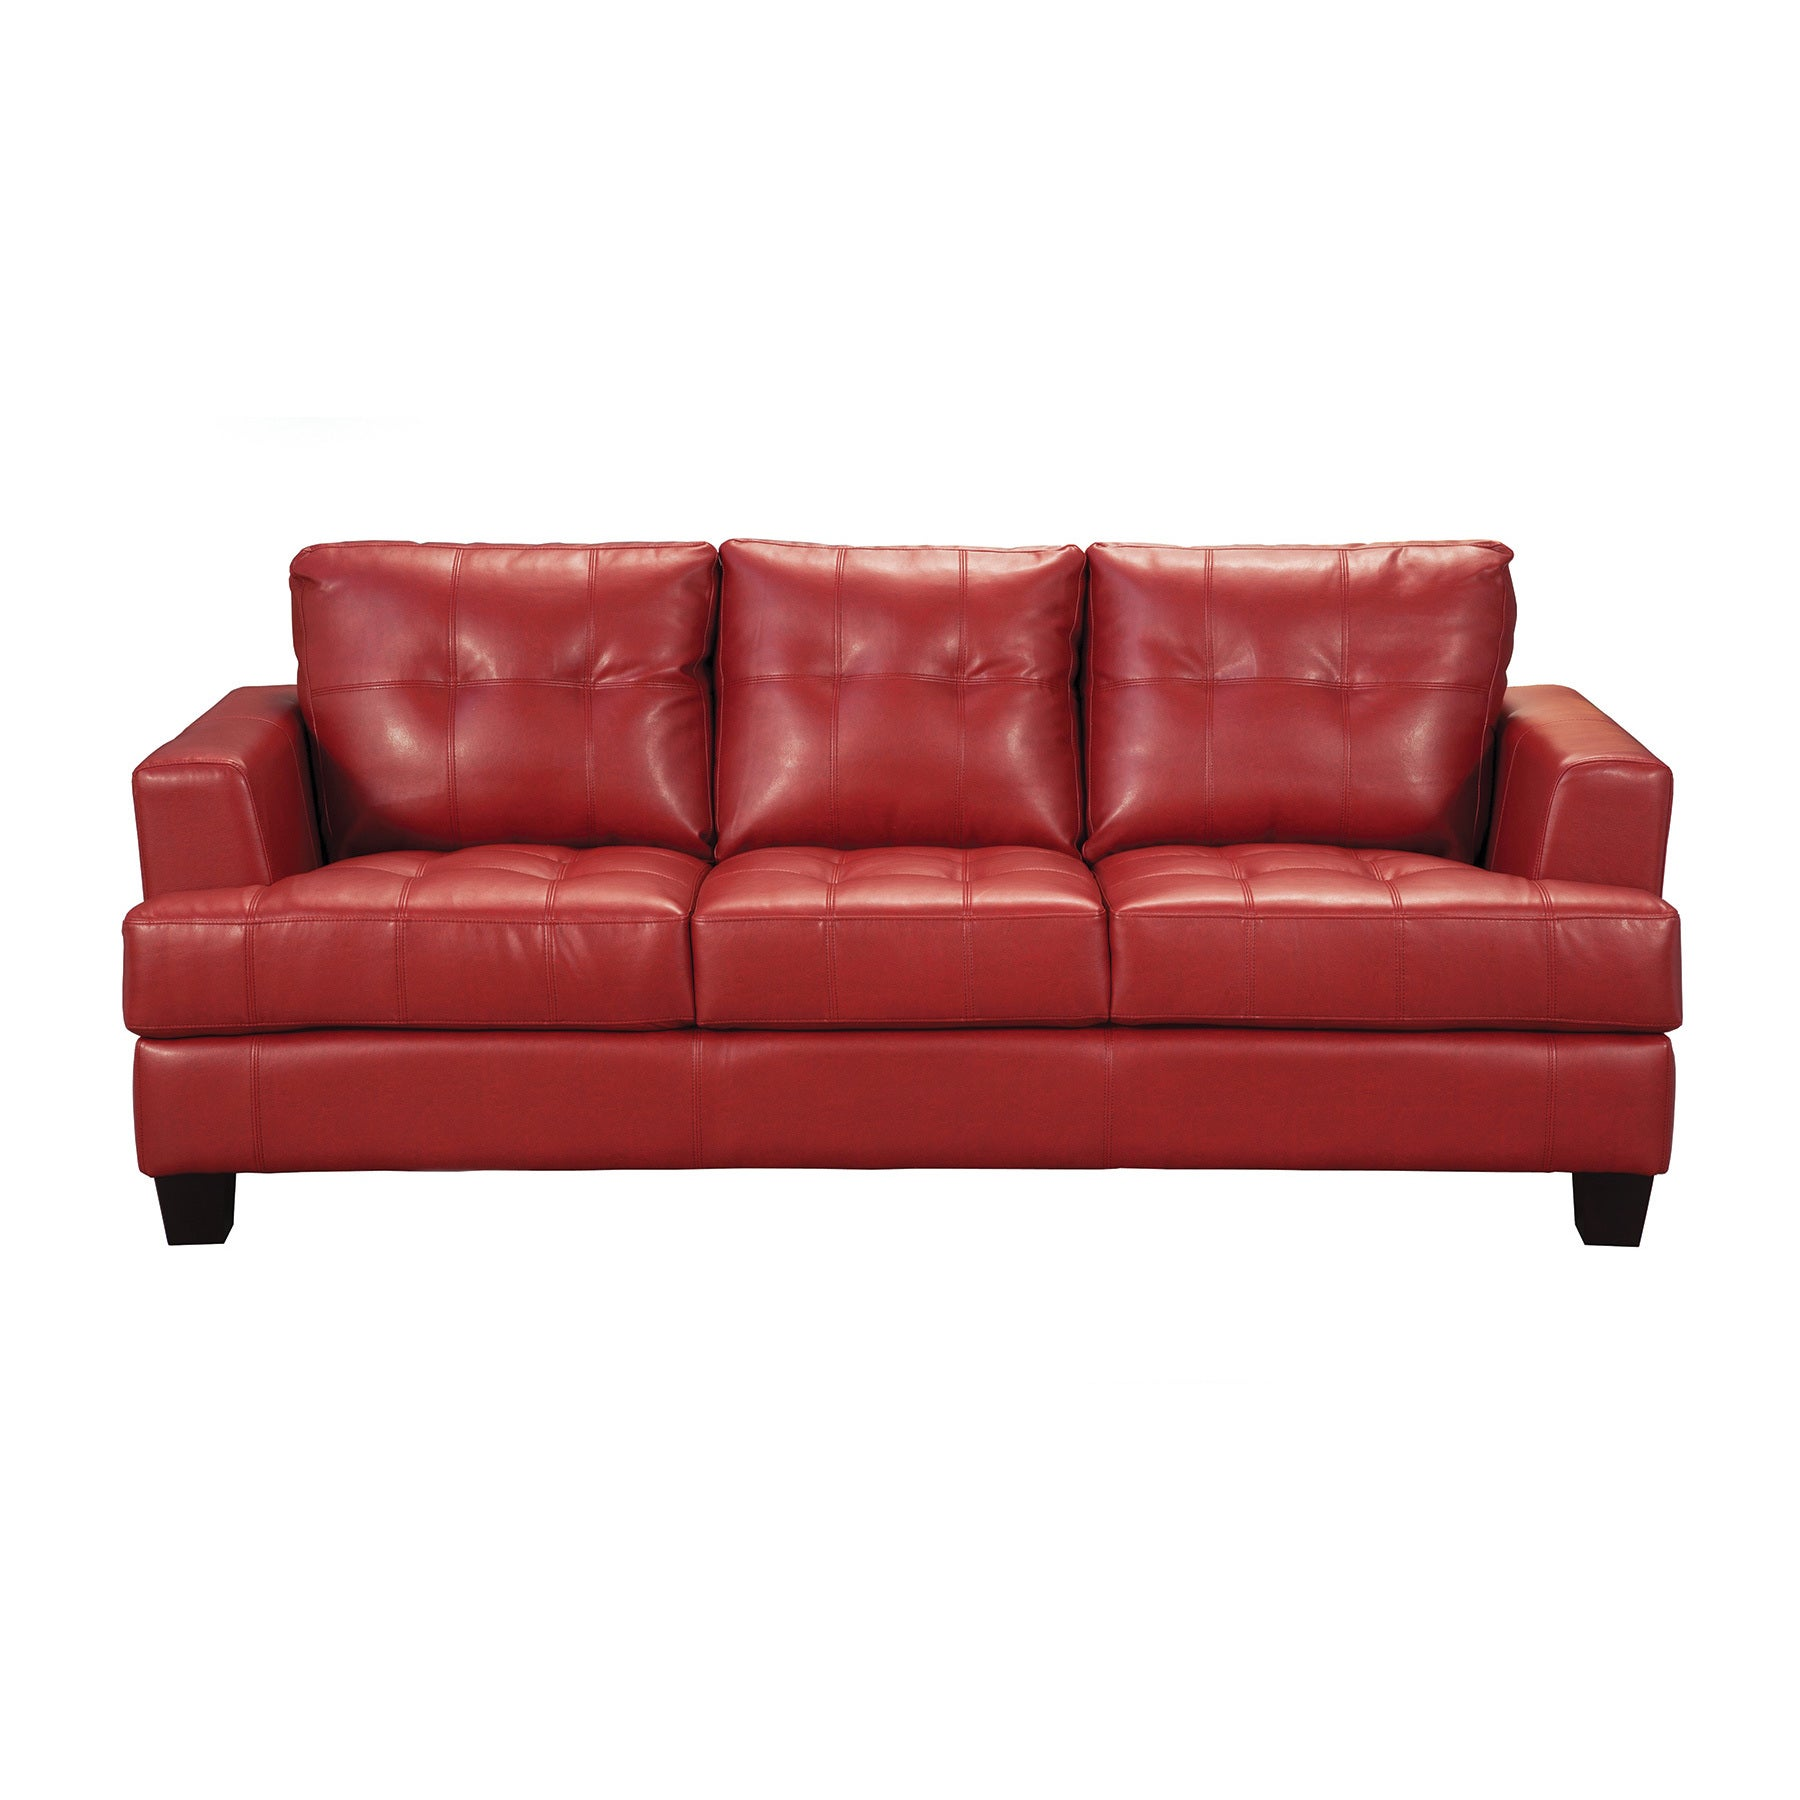 Shop coaster company red bonded leather sofa free shipping today overstock com 12189748